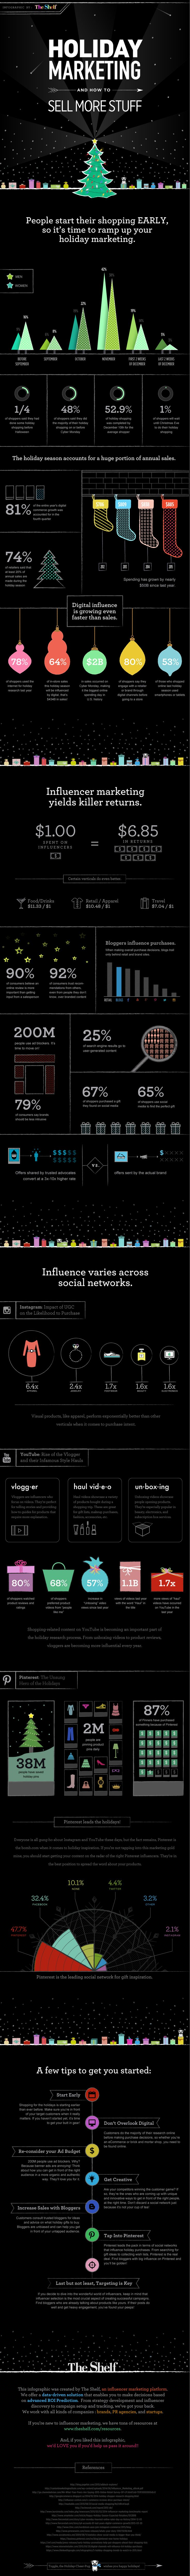 Infographic: How Influencers Took Over Holiday Marketing